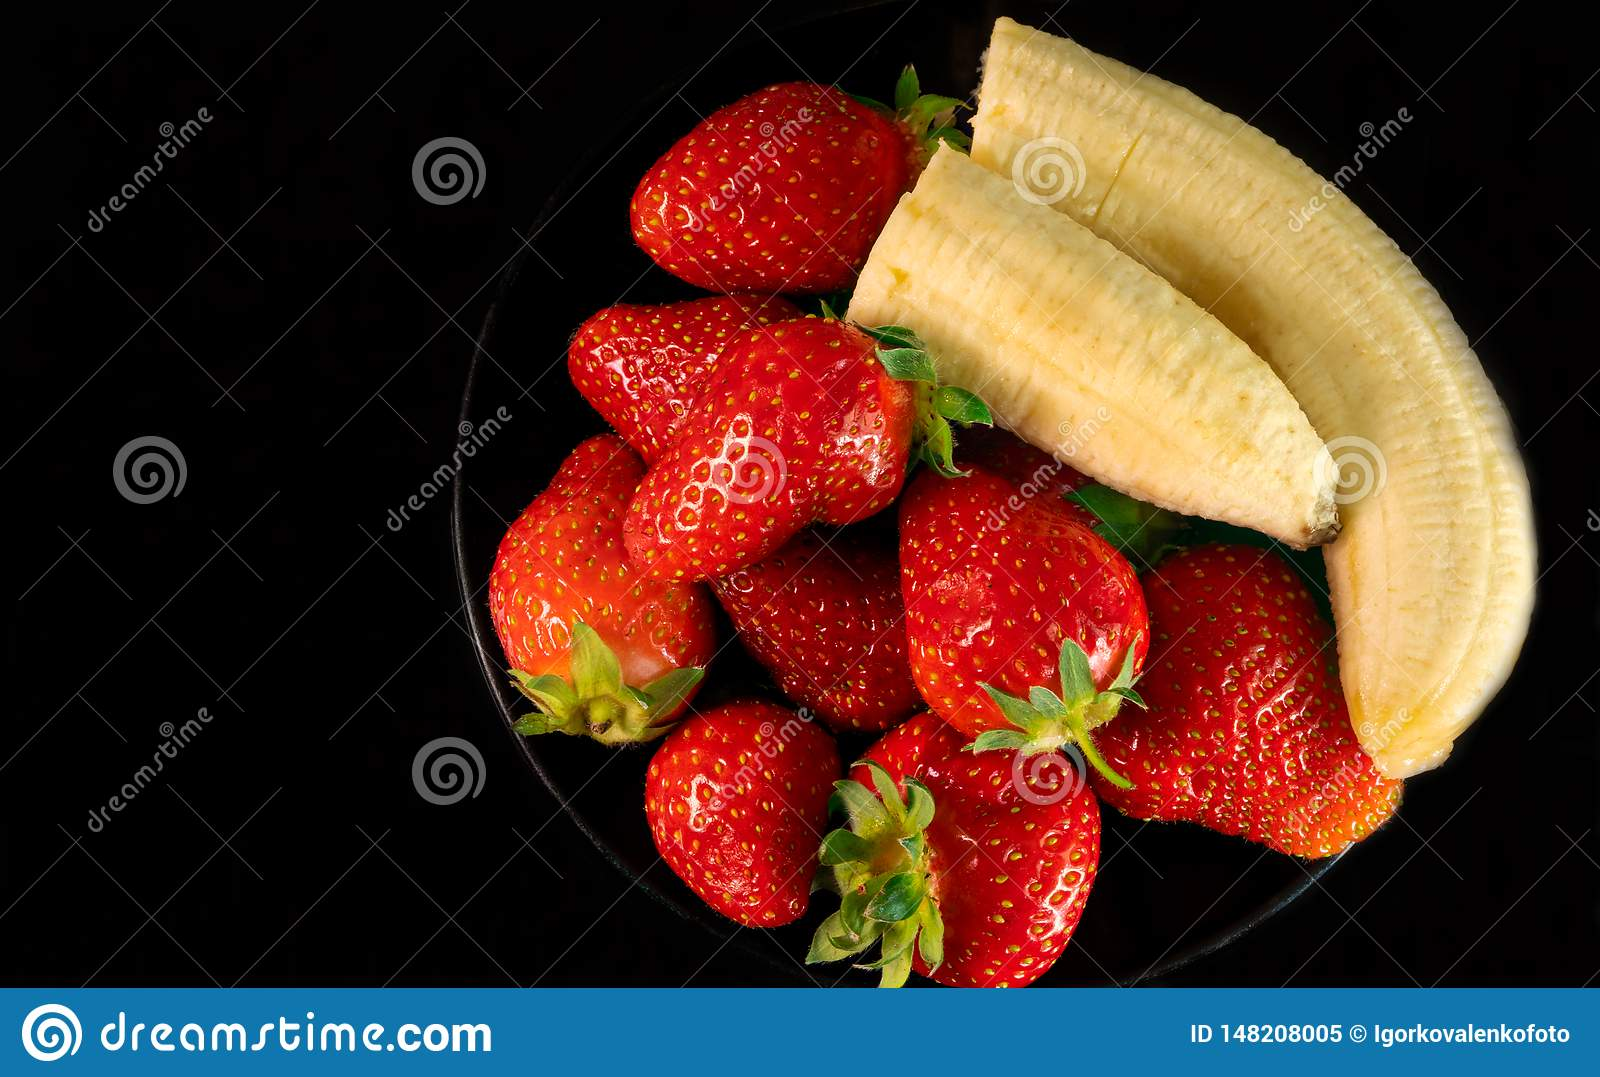 Strawberries and bananas are on the table